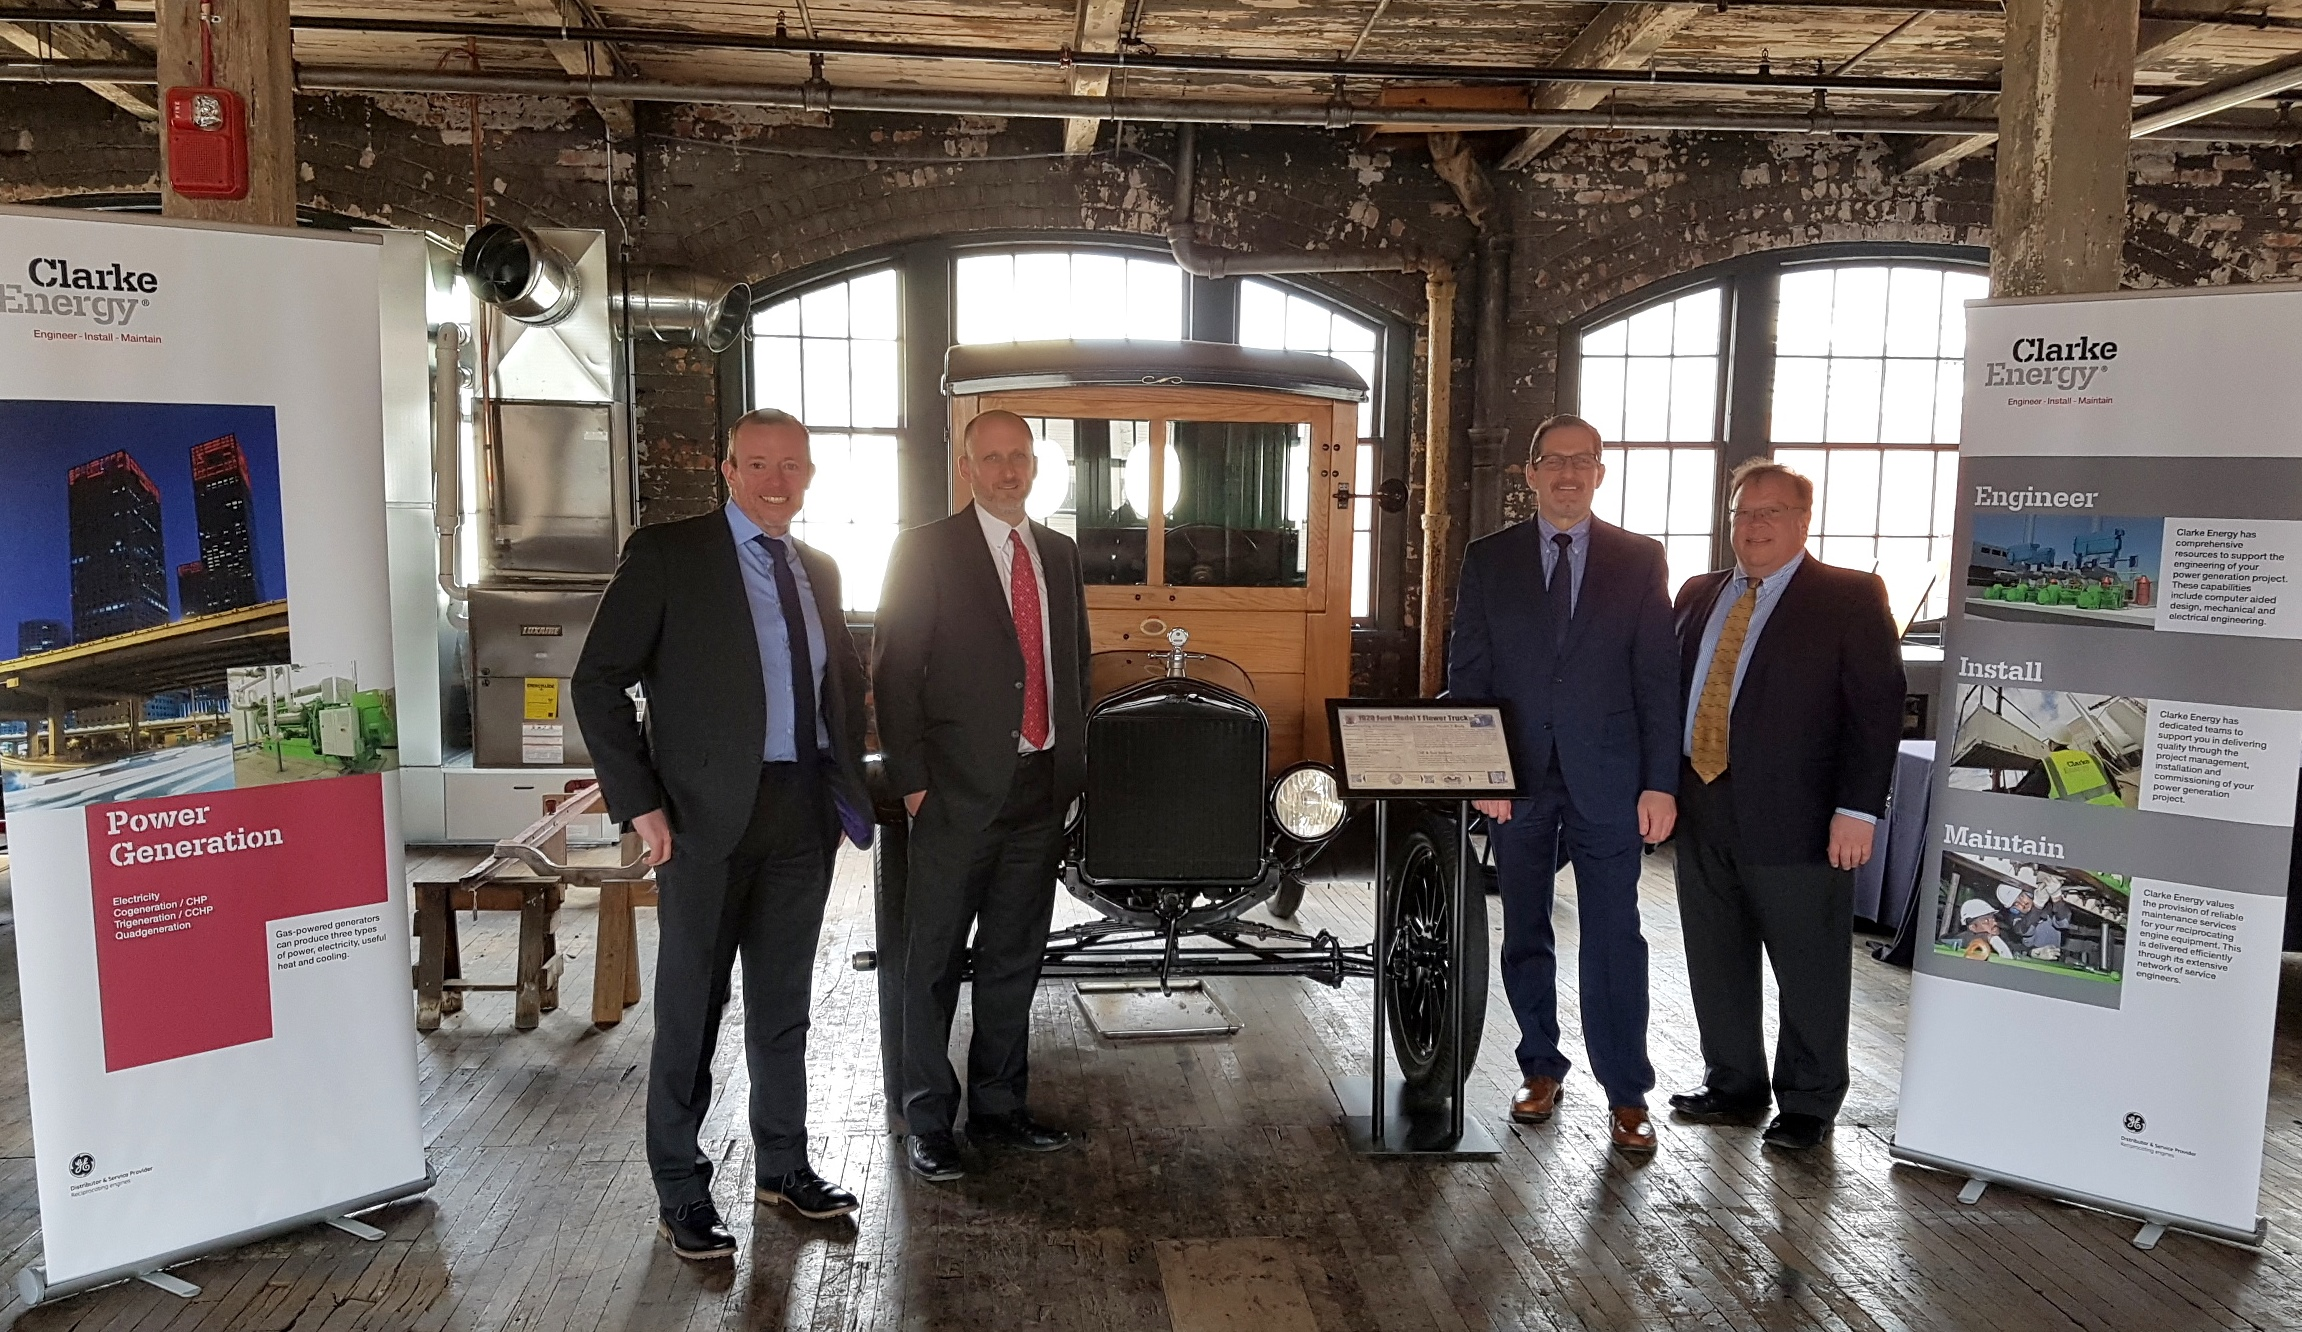 A photograph of Clarke Energy's US team members (l-r Chris Hayhurst, Business Development Director, Jon Going, Sales Director, Chris Bixby, Sales Engineer, Charlie Mayer, Sales Engineer) and historic Ford motorcar